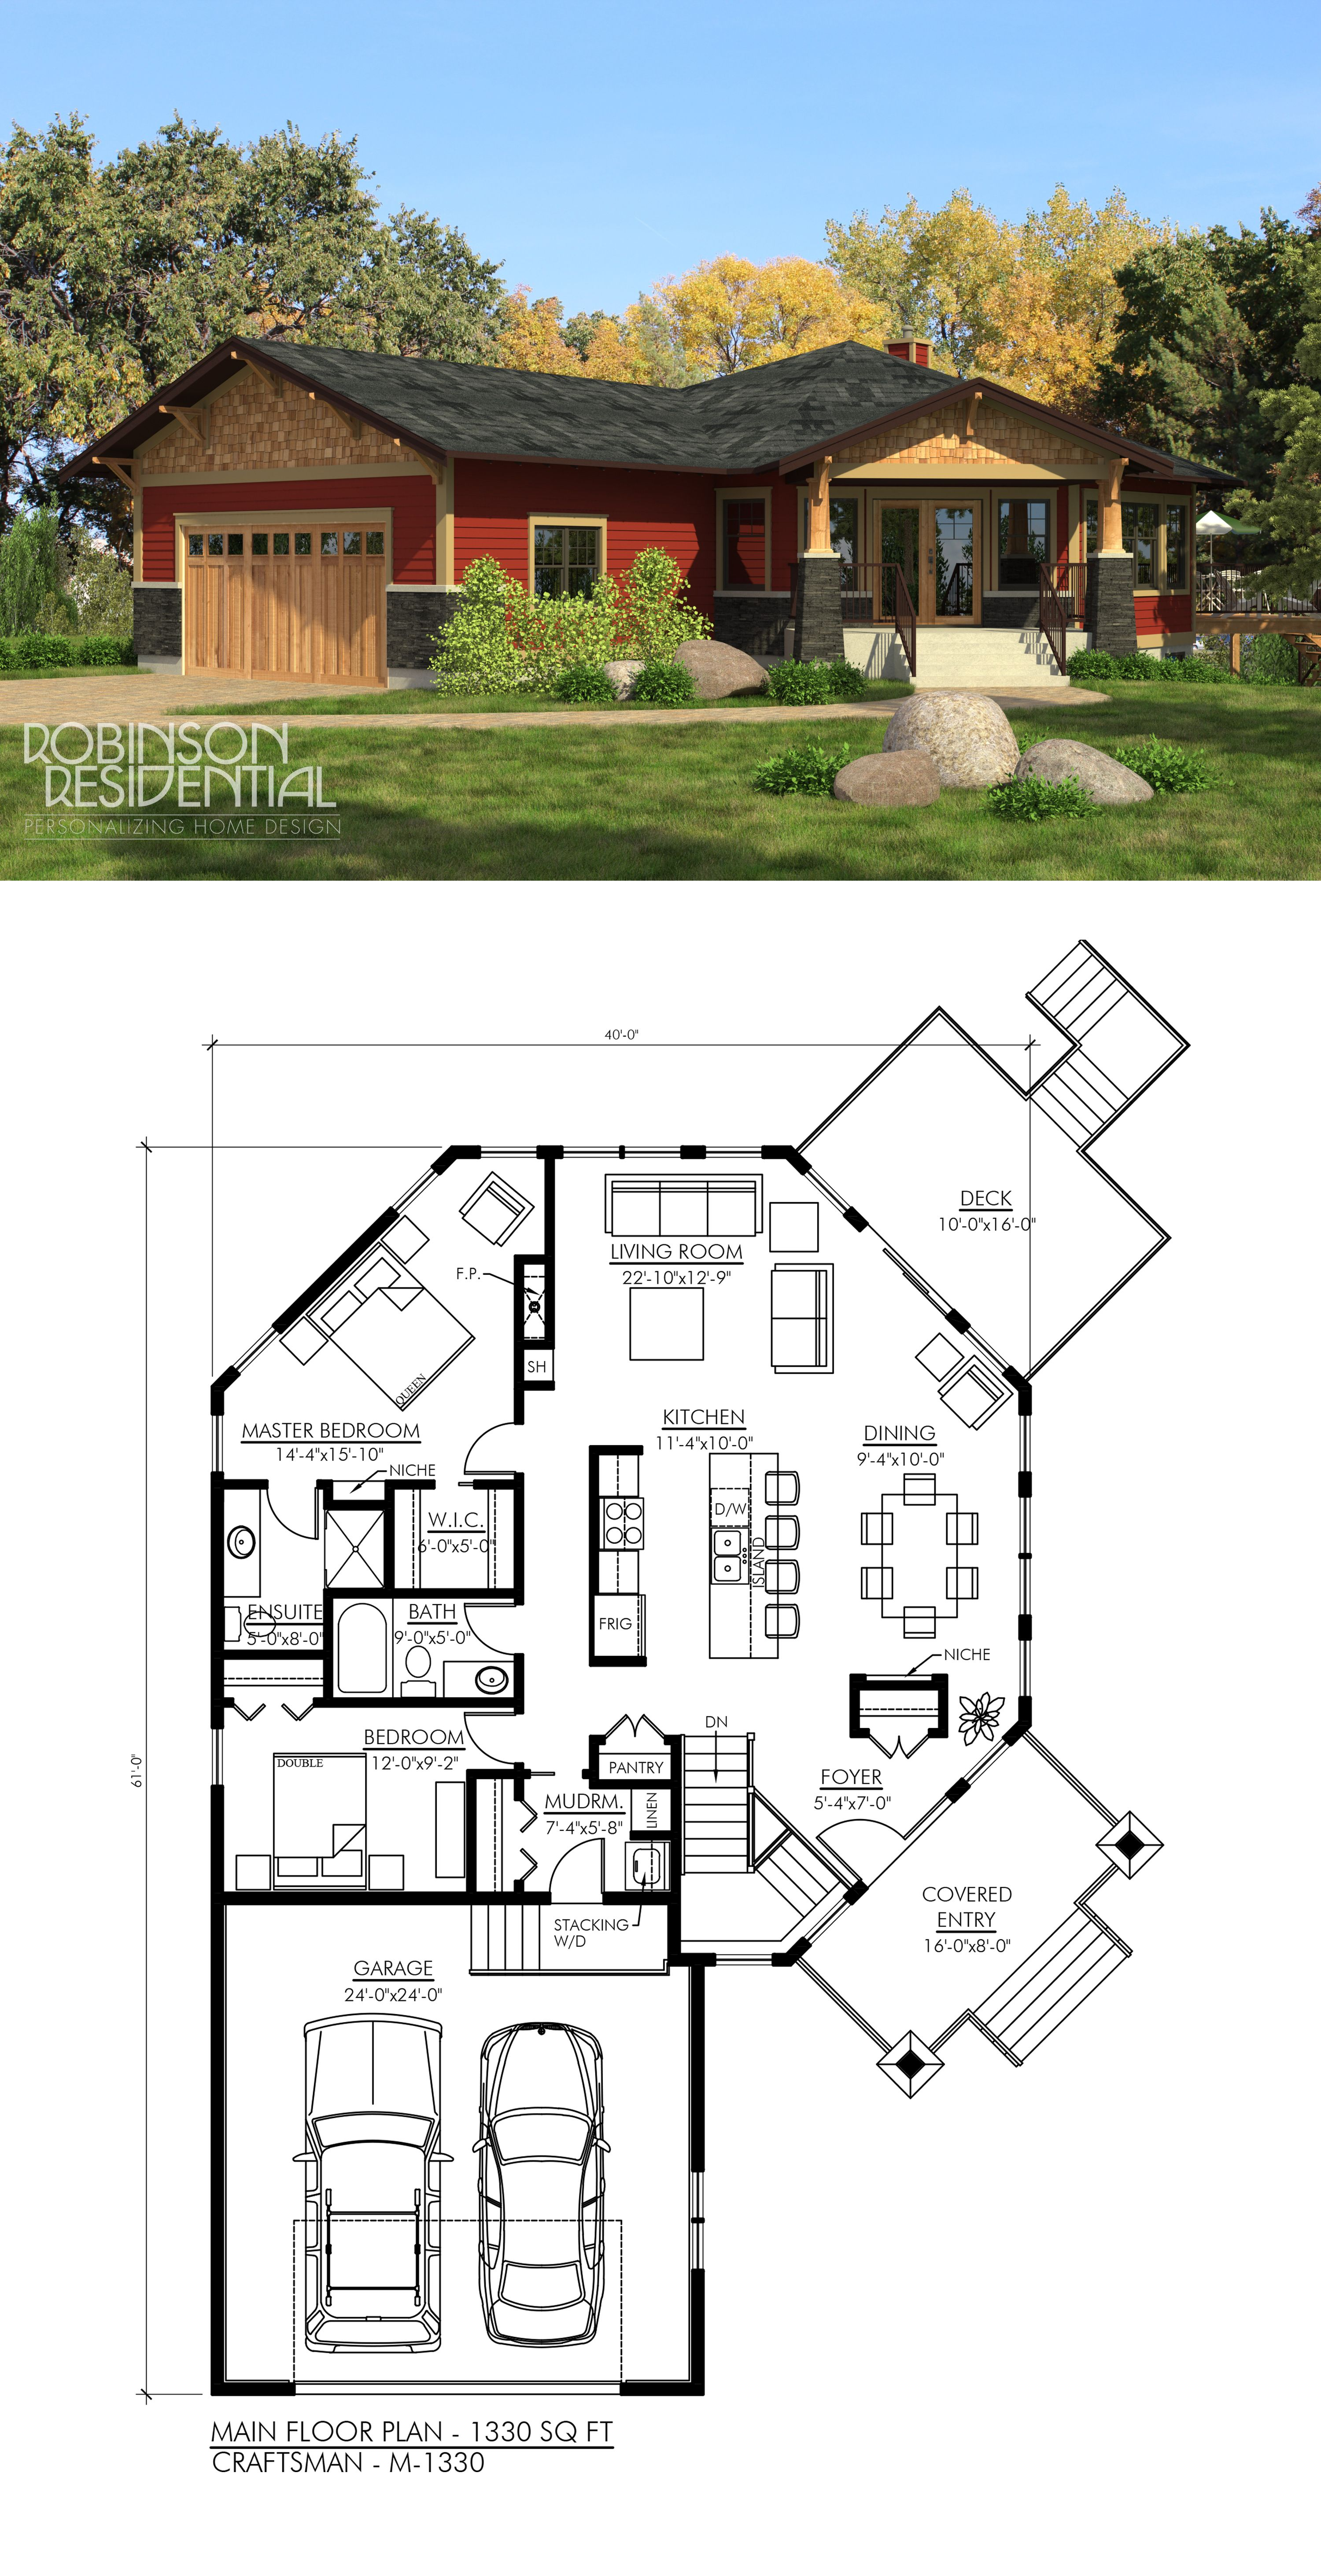 Craftsman M 1327 Robinson Plans Dream House Plans Cottage Plan Craftsman House